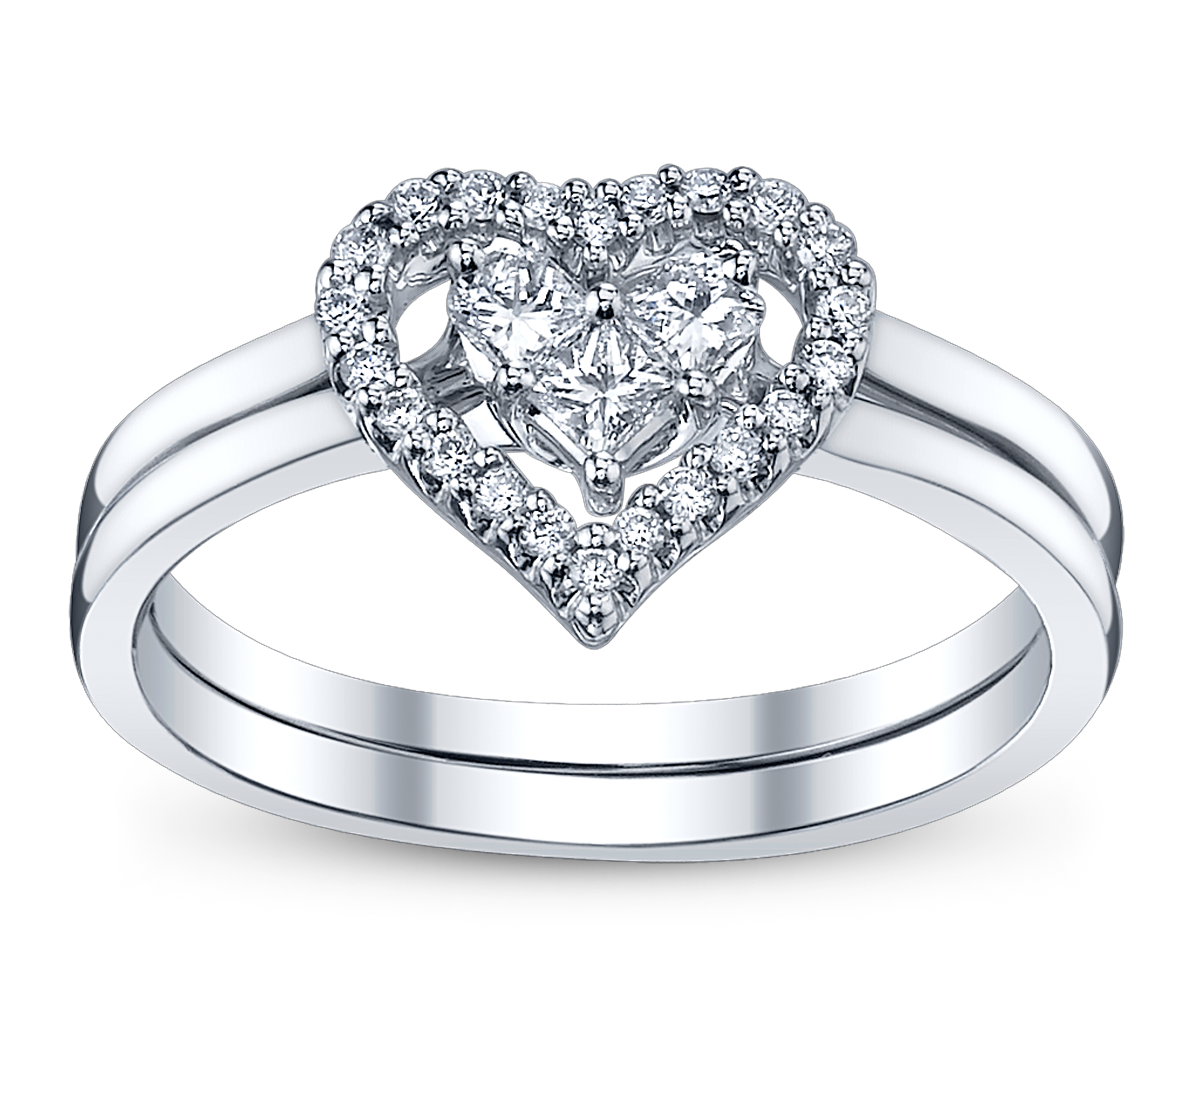 Wedding ring images free. Diamond band png image transparent library